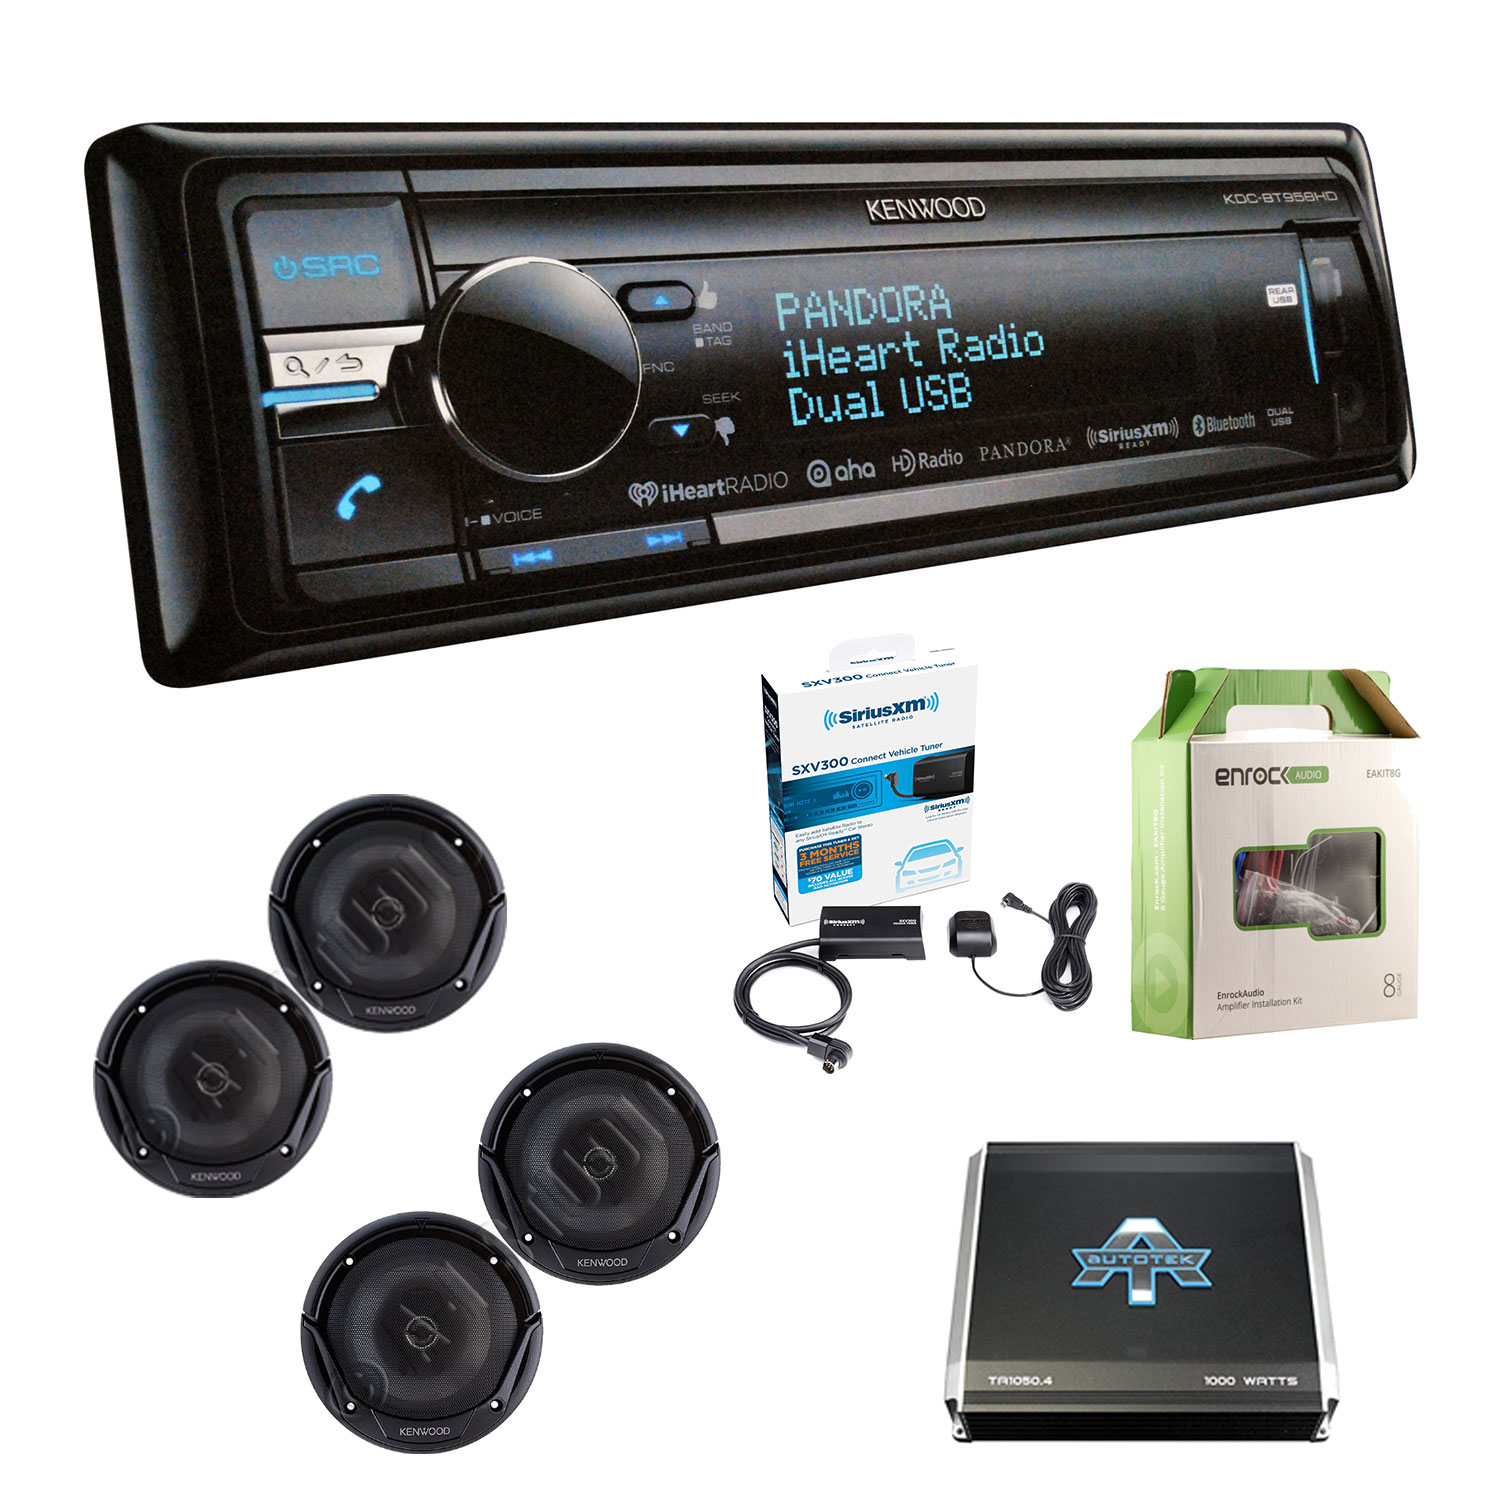 Kenwood KDCBT958HD CD Player BT HD Radio USB w/ Kenwood KFC1665S 2-Way Car Speakers (2-Pairs), Autotek TA10504 1000W 4 Chan Amplifier, Enrock EAKIT8G 18G 50' Speaker wire & Sirius SXV300-V1 RadioTuner